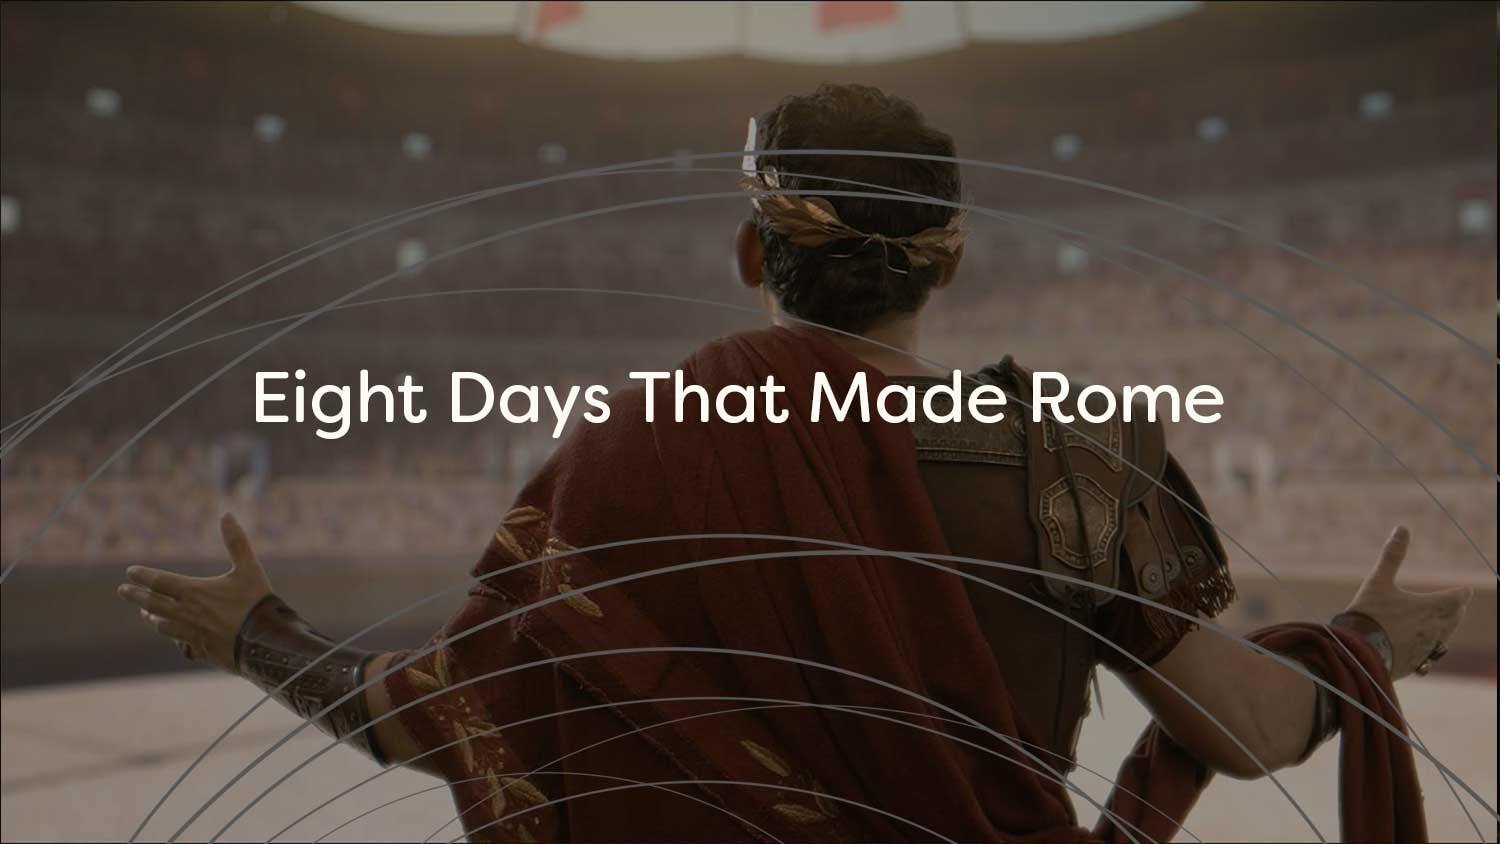 Eight-Days-That-Made-Rome-Title-Card-Test.jpg